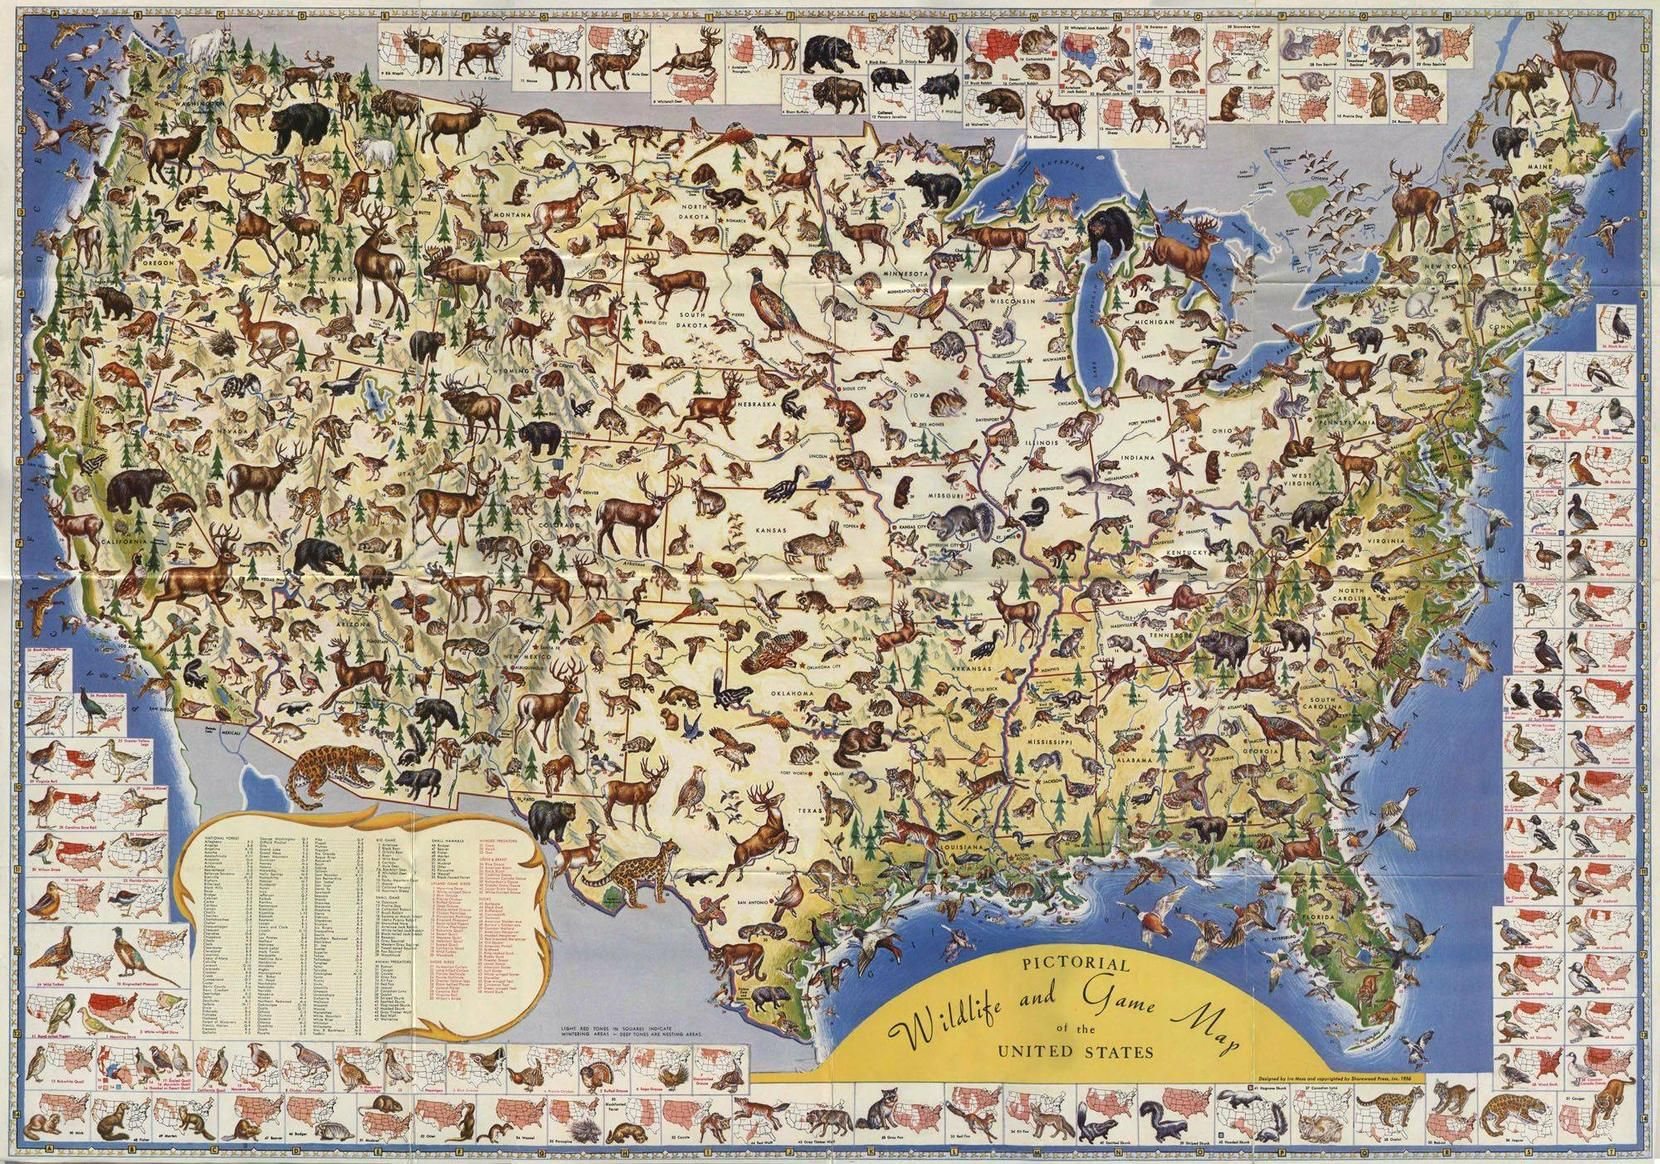 40 Maps That Explain Food In America Livestock Food Insecurity - Dairy Farm Dot Map O Us